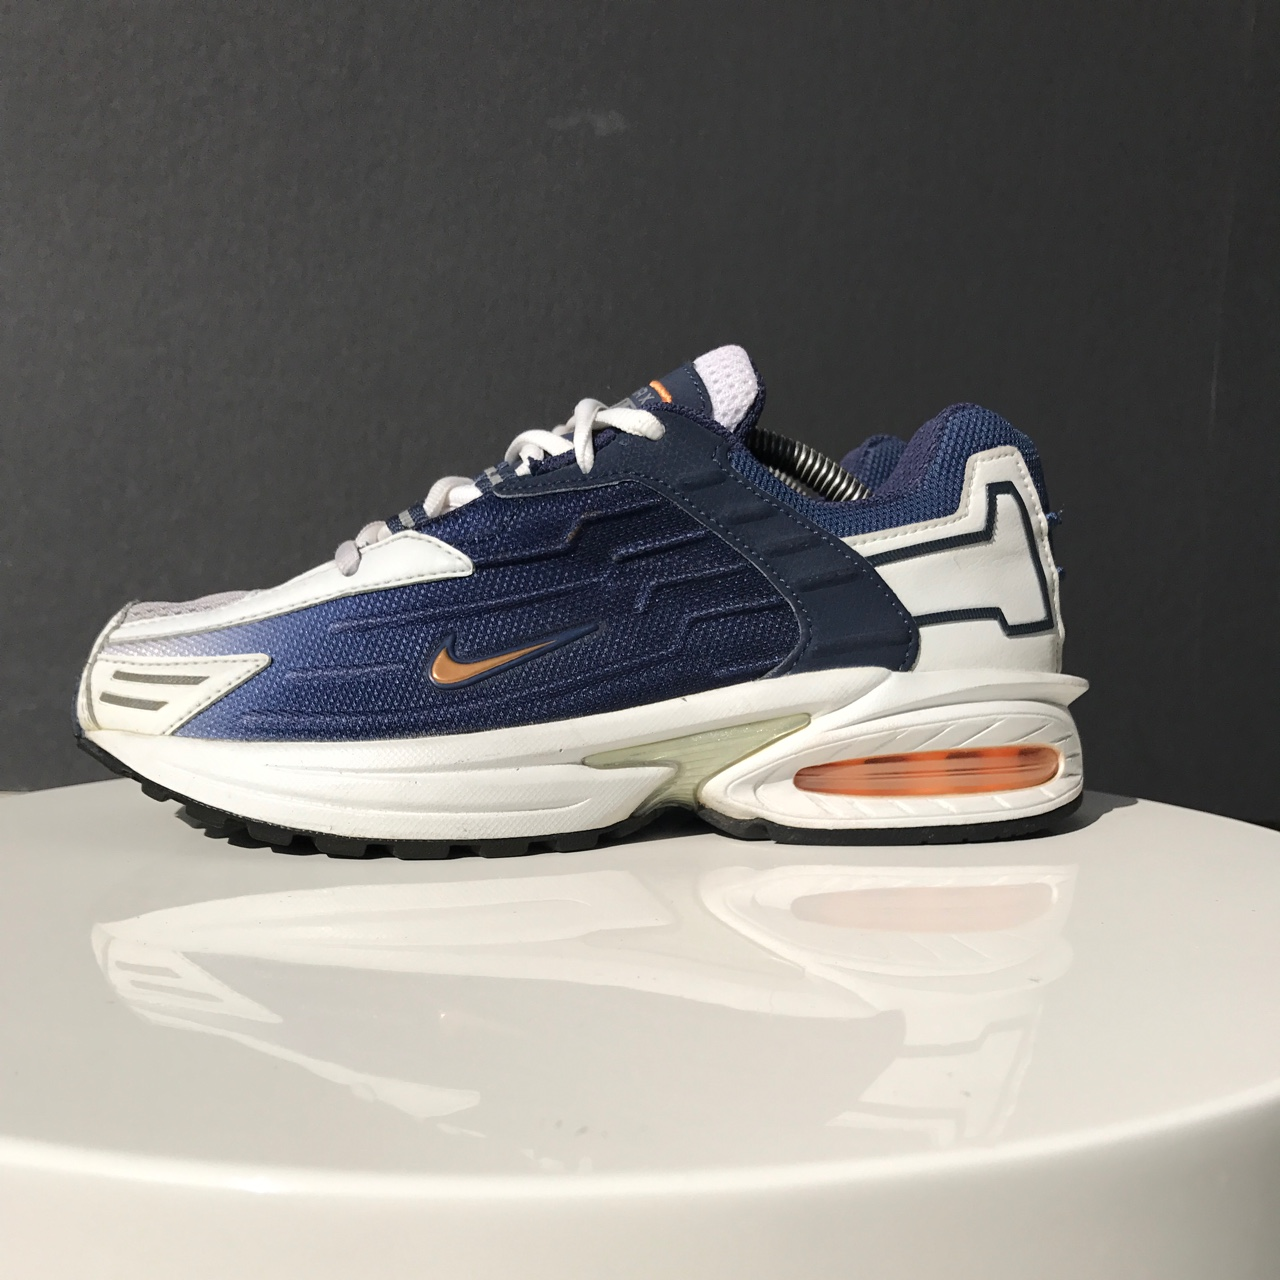 Nike air max triax , vintage 2001 . Condition is Depop